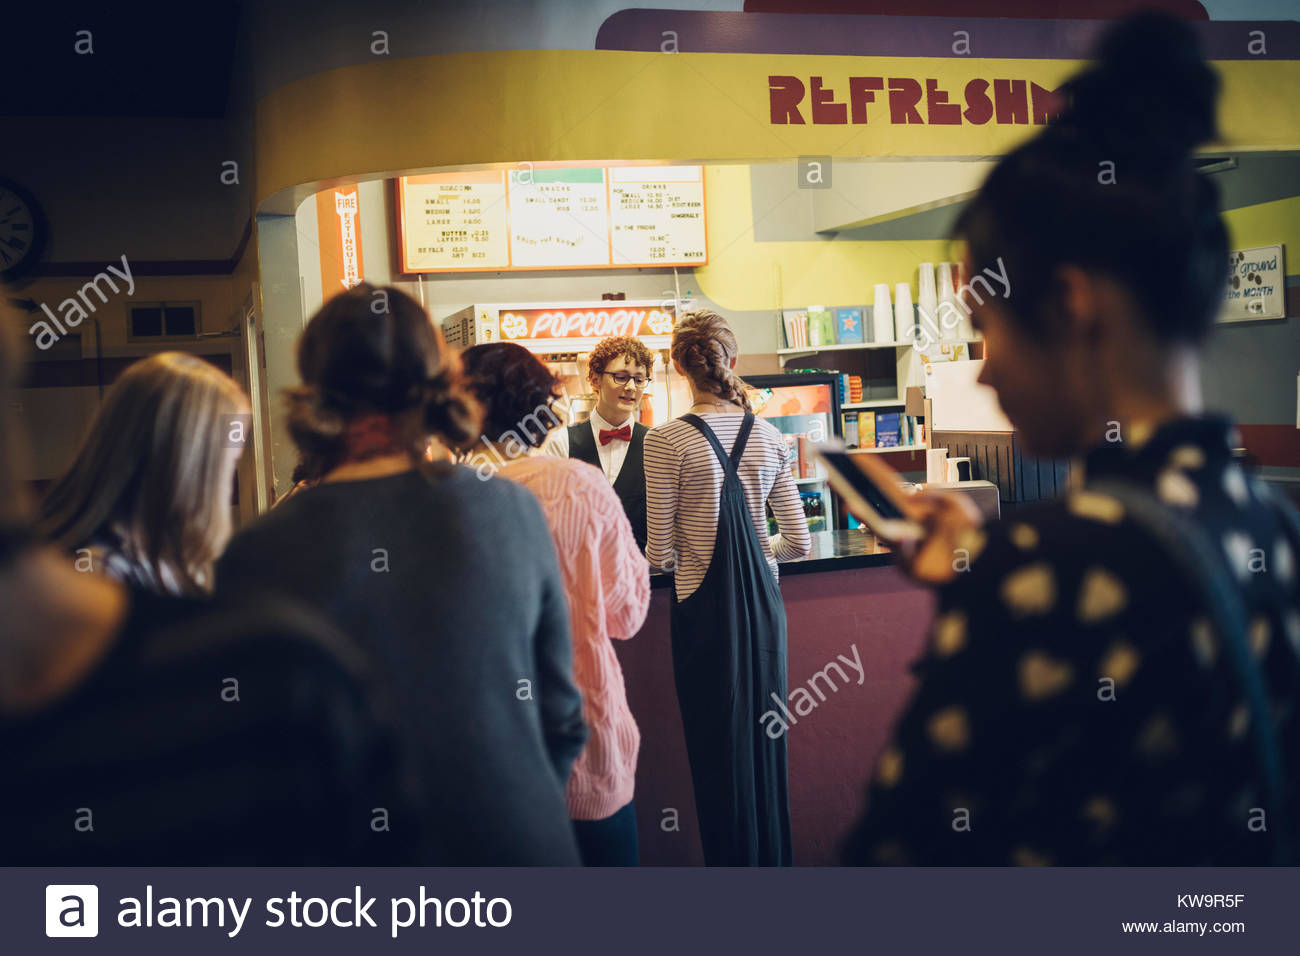 Tweens waiting in queue at refreshments concession stand in movie theater - Stock Image